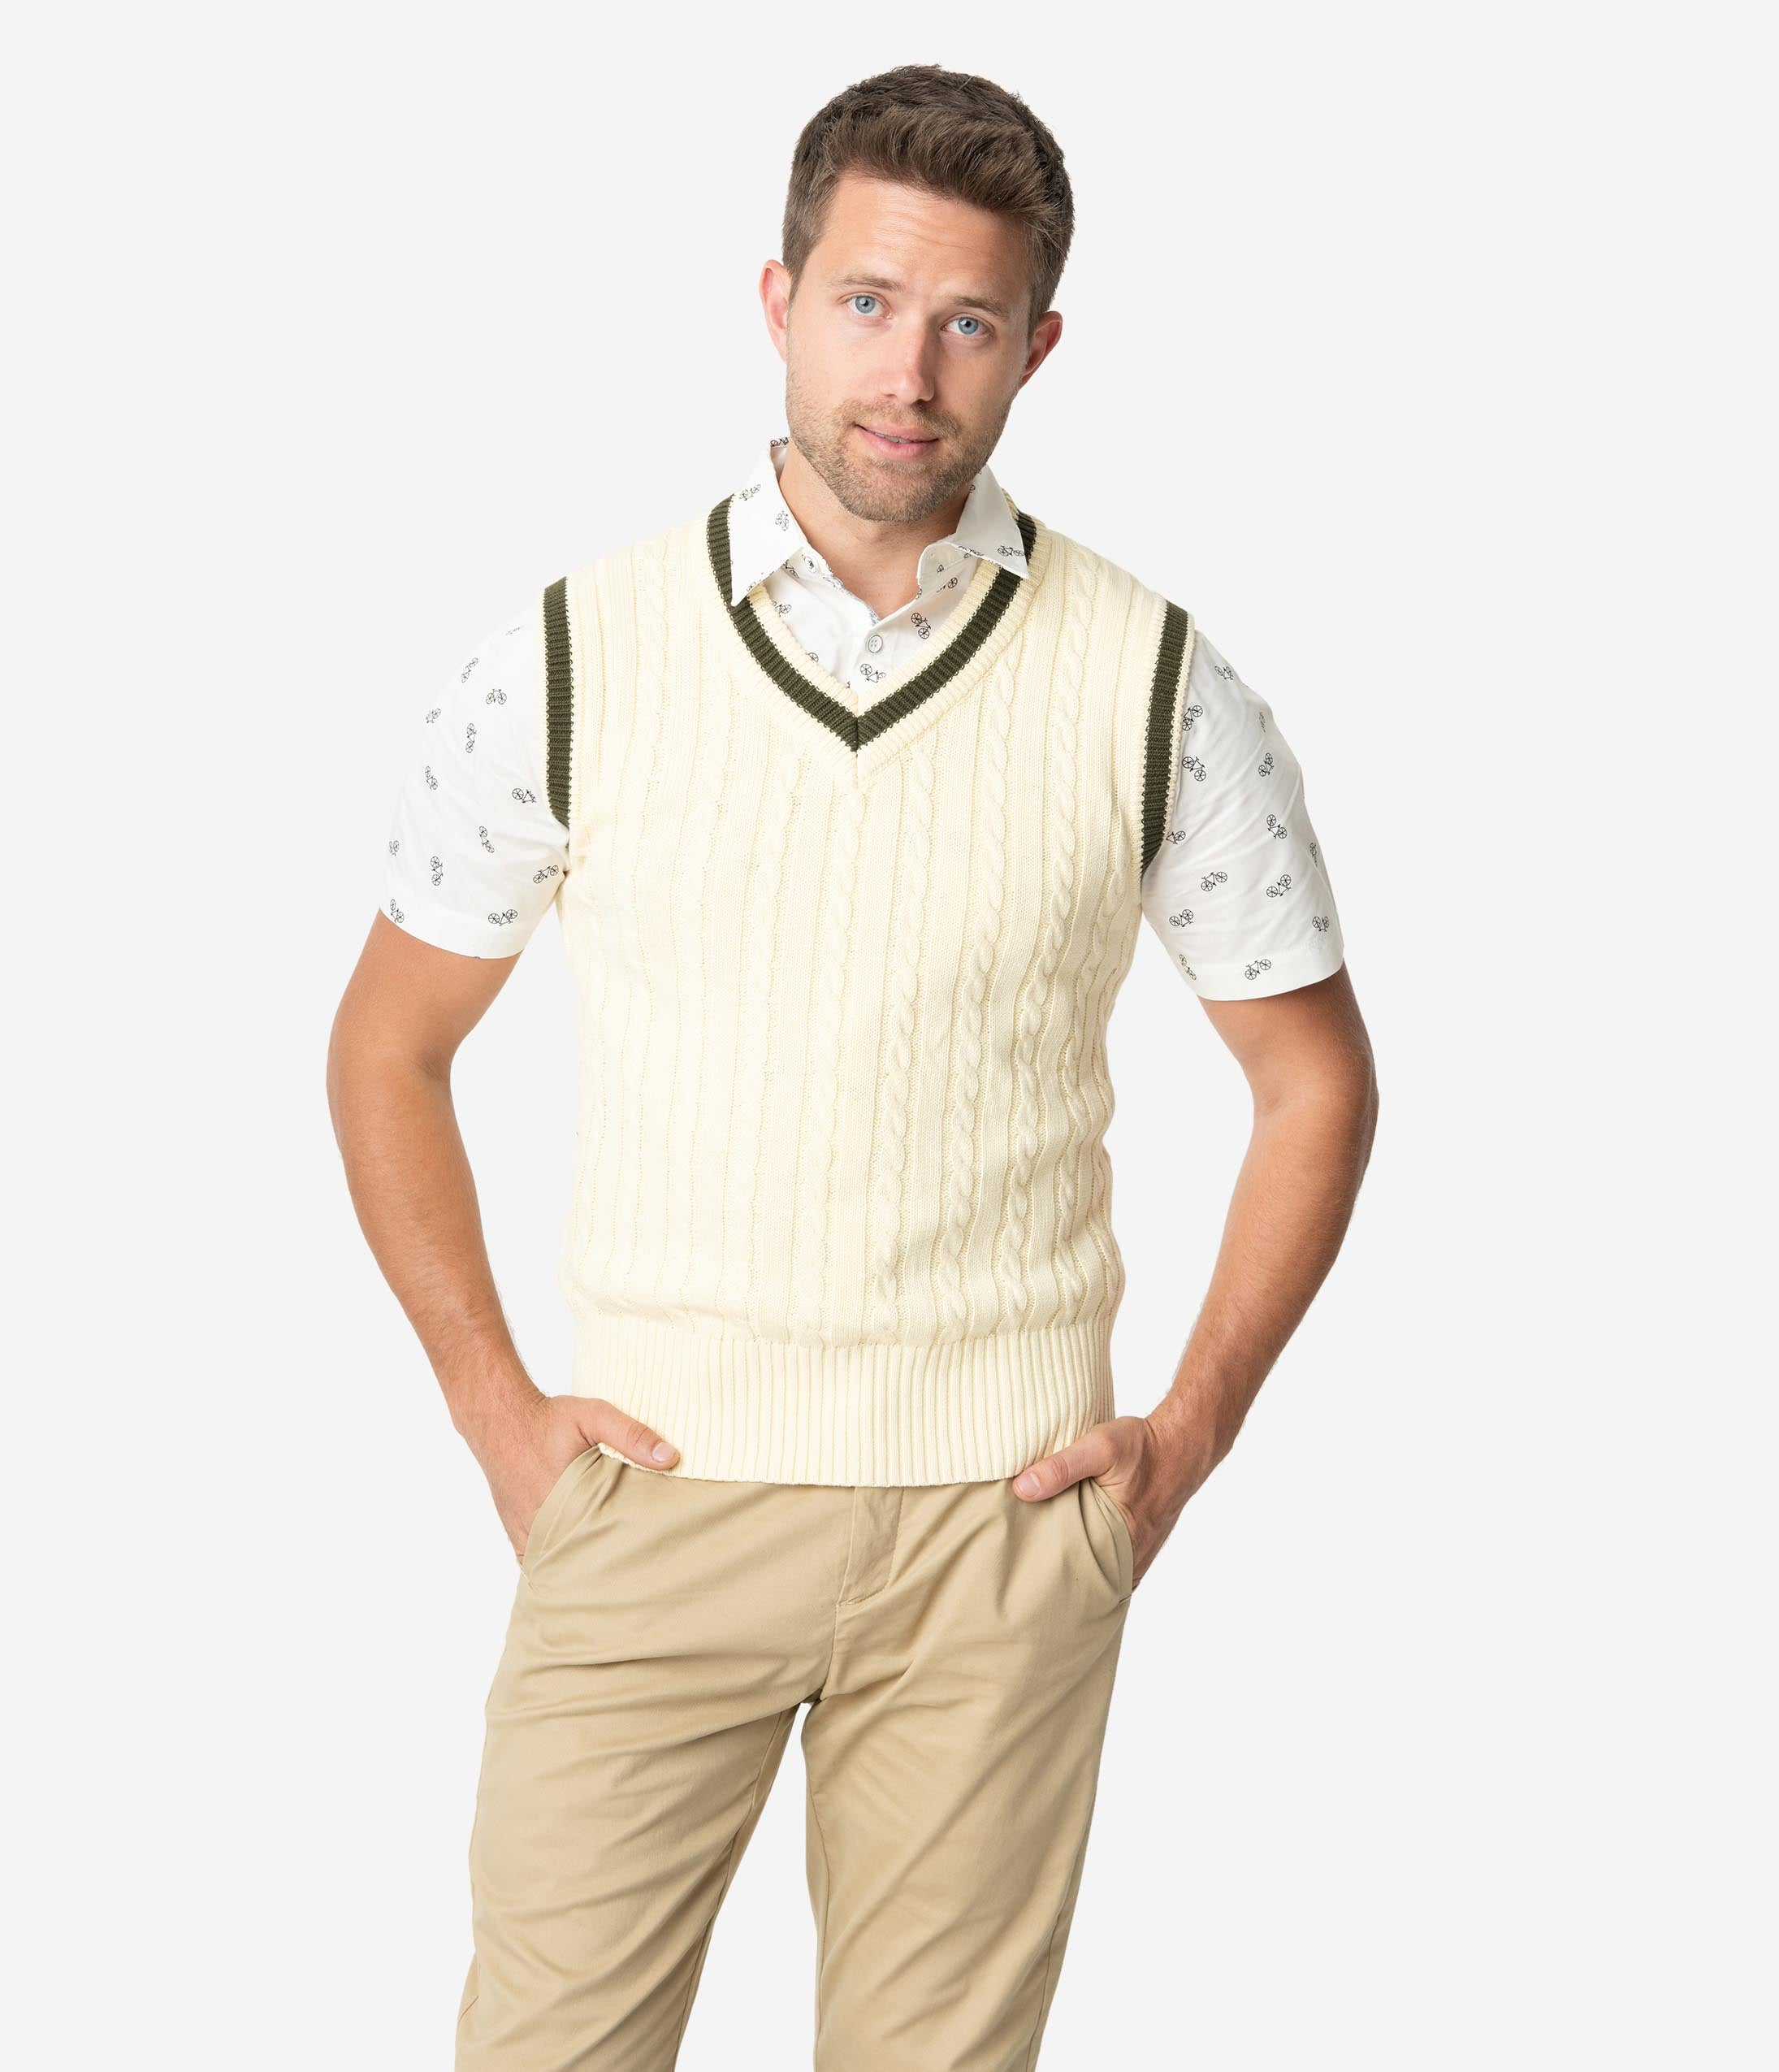 Retro Clothing for Men | Vintage Men's Fashion Collectif 1950S Cream Cable Knit Alex Mens Sweater Vest $48.00 AT vintagedancer.com